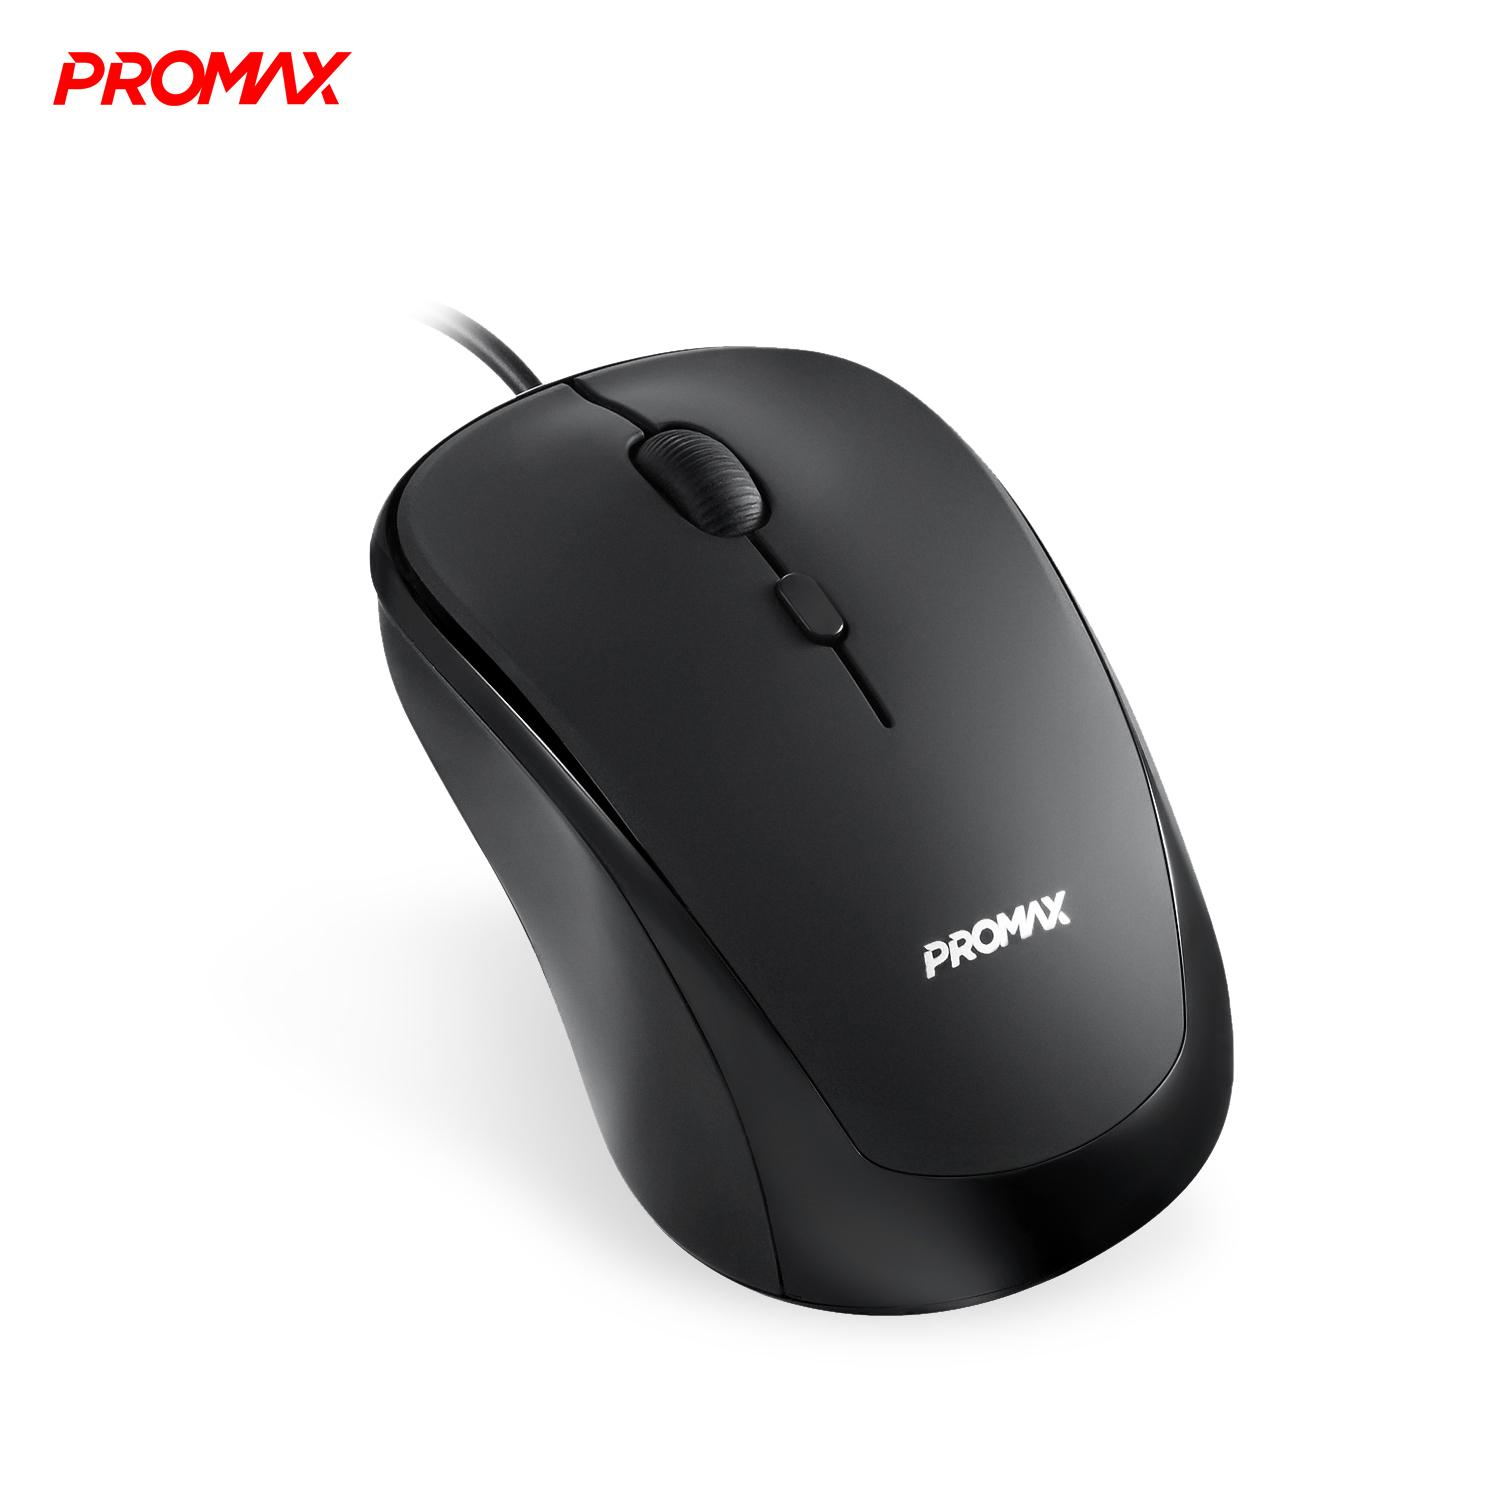 69e1cfc878e Computer Mouse for sale - PC Mice price, brands & offers online ...